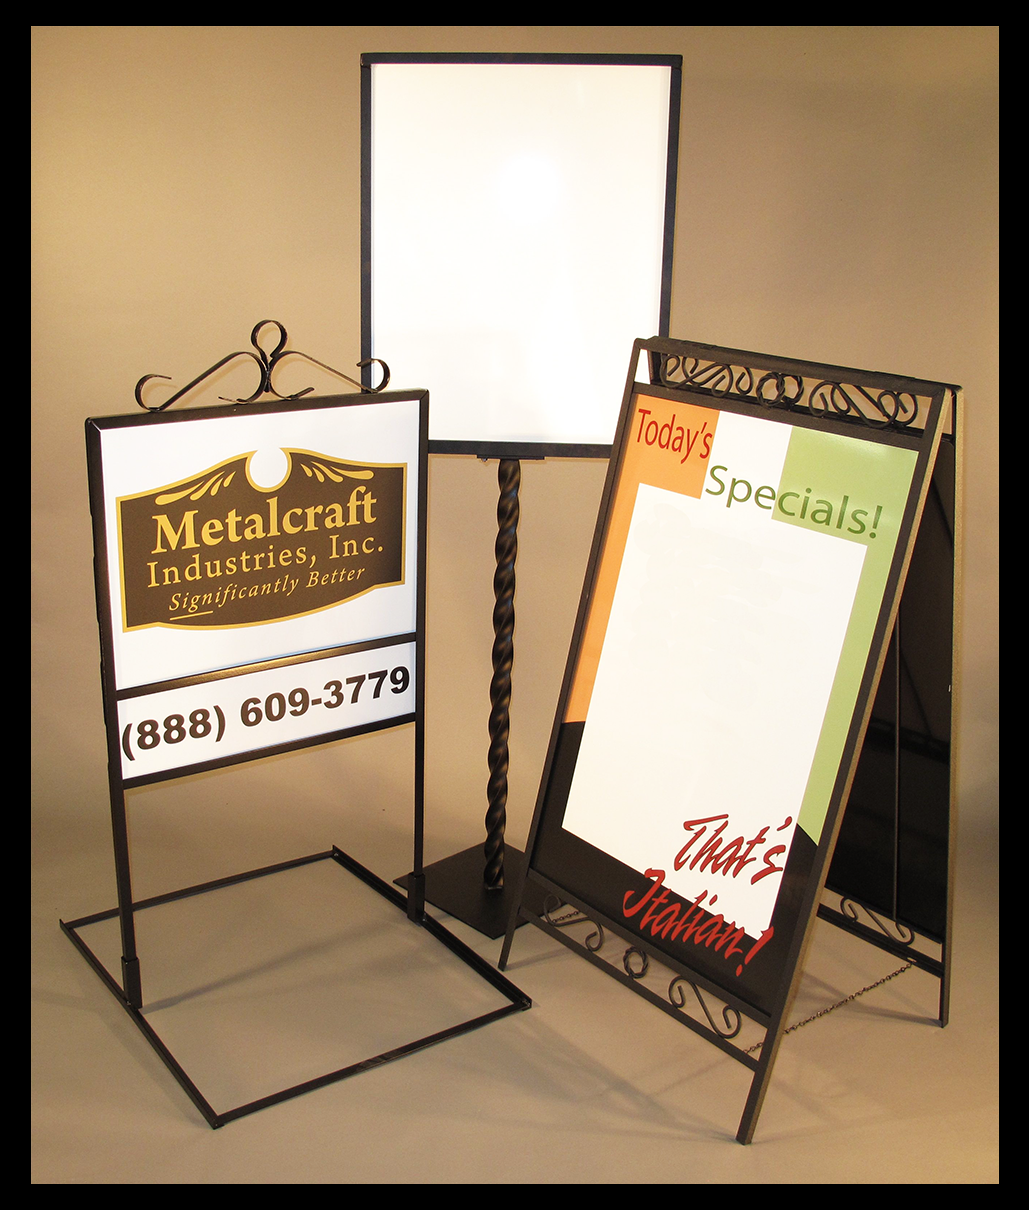 Yard Signs and Realty Frames - All Metal American Made